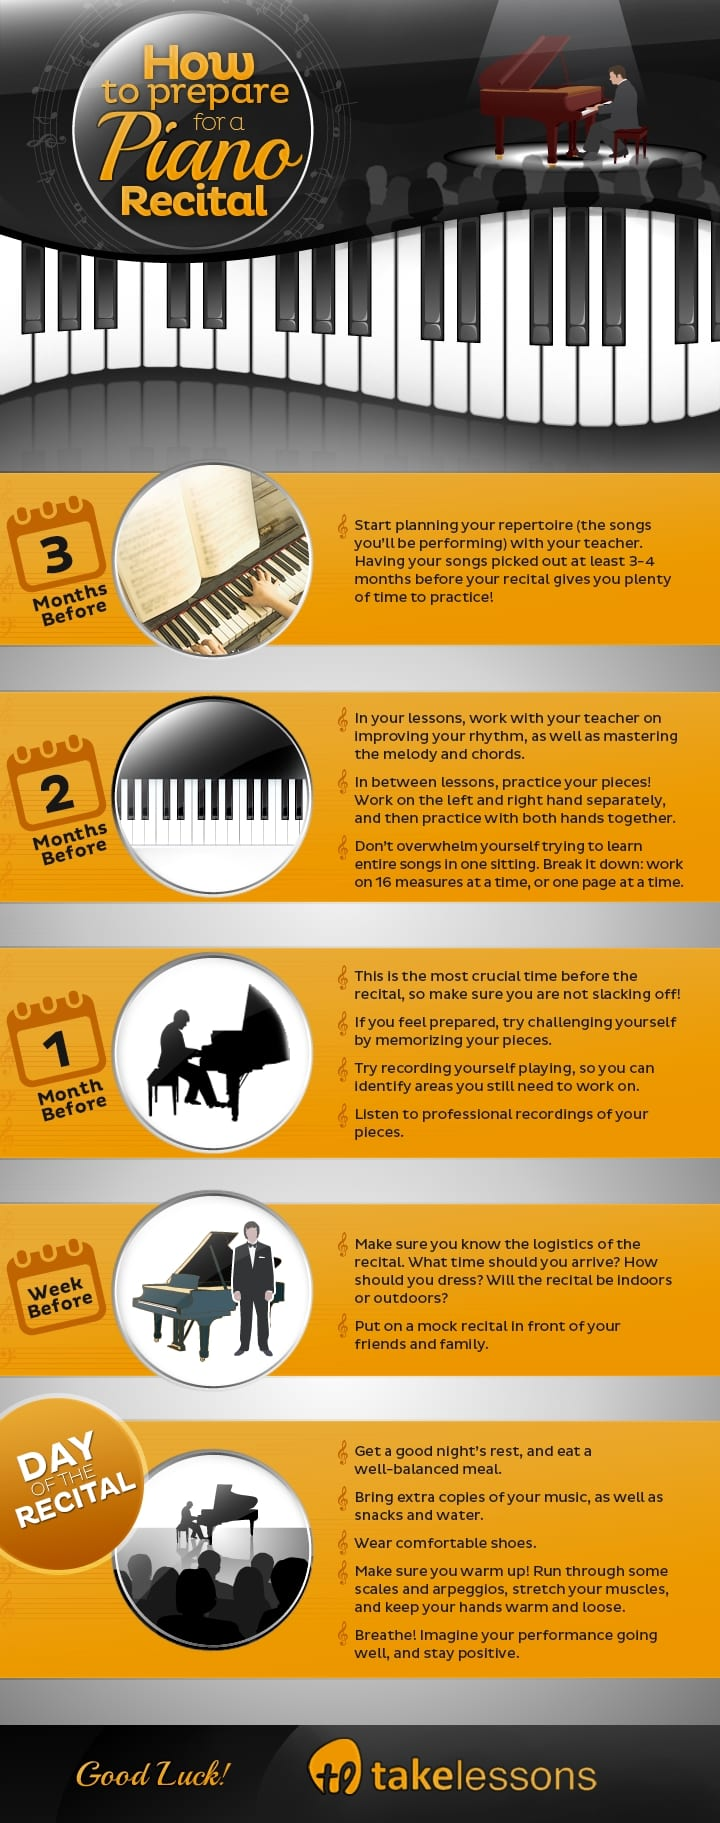 Piano Recital Timeline - How to Get Ready for Your First Piano Recital